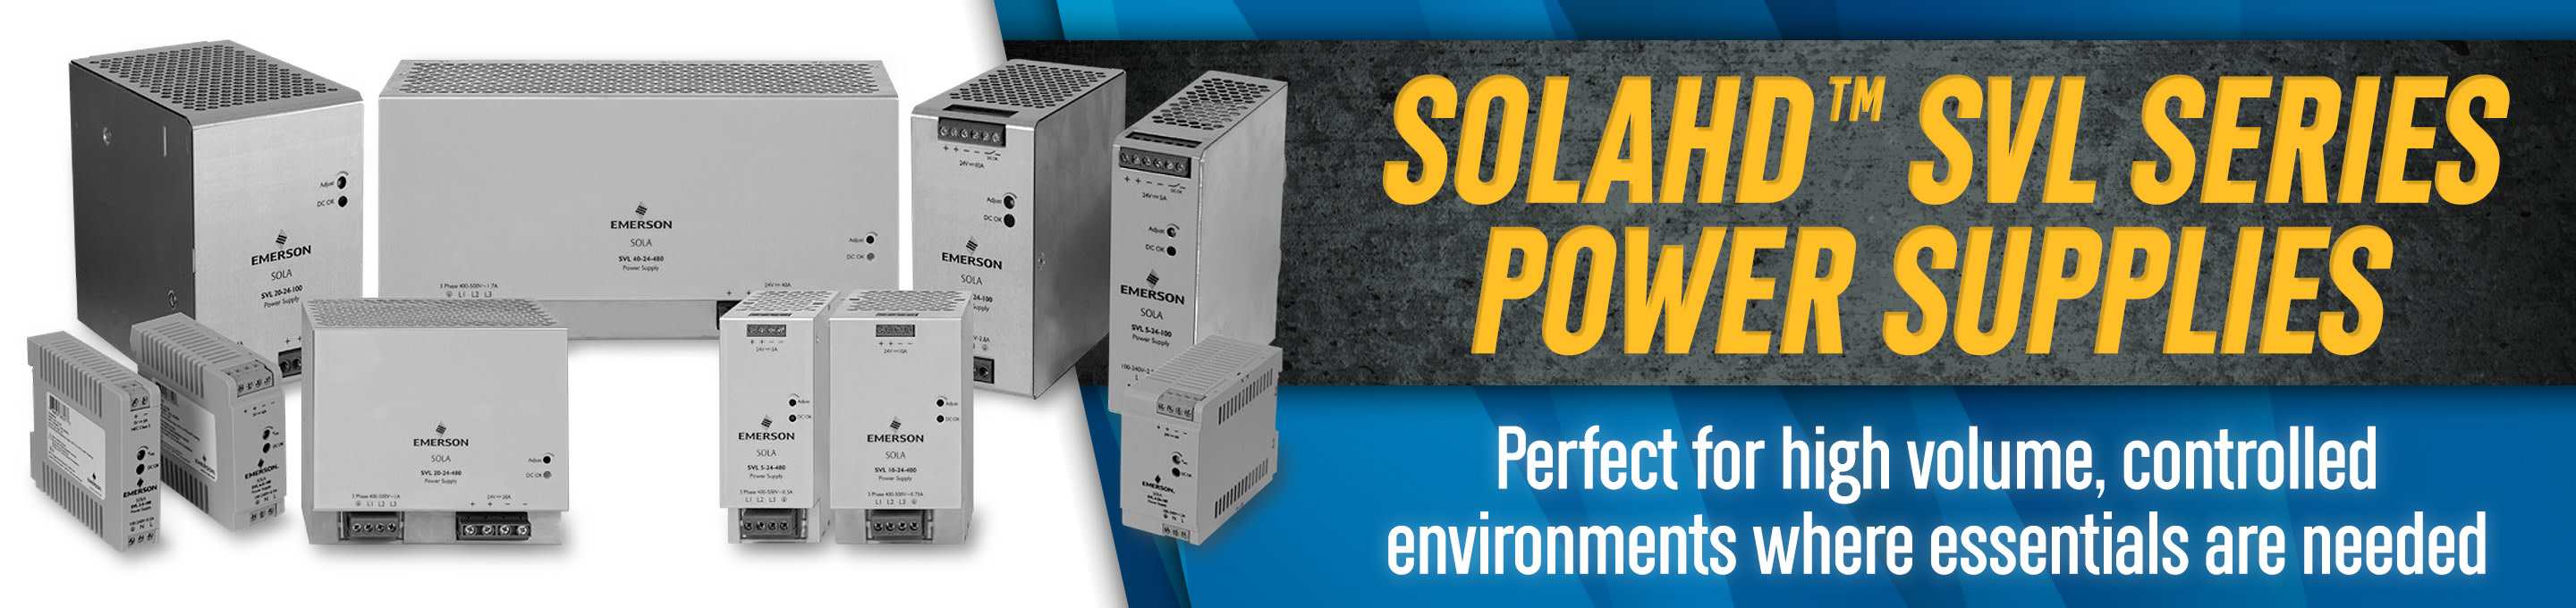 Headline: SolaHD SVL Series Power Supplies | Perfect for high volume, controlled environments where essentials are needed